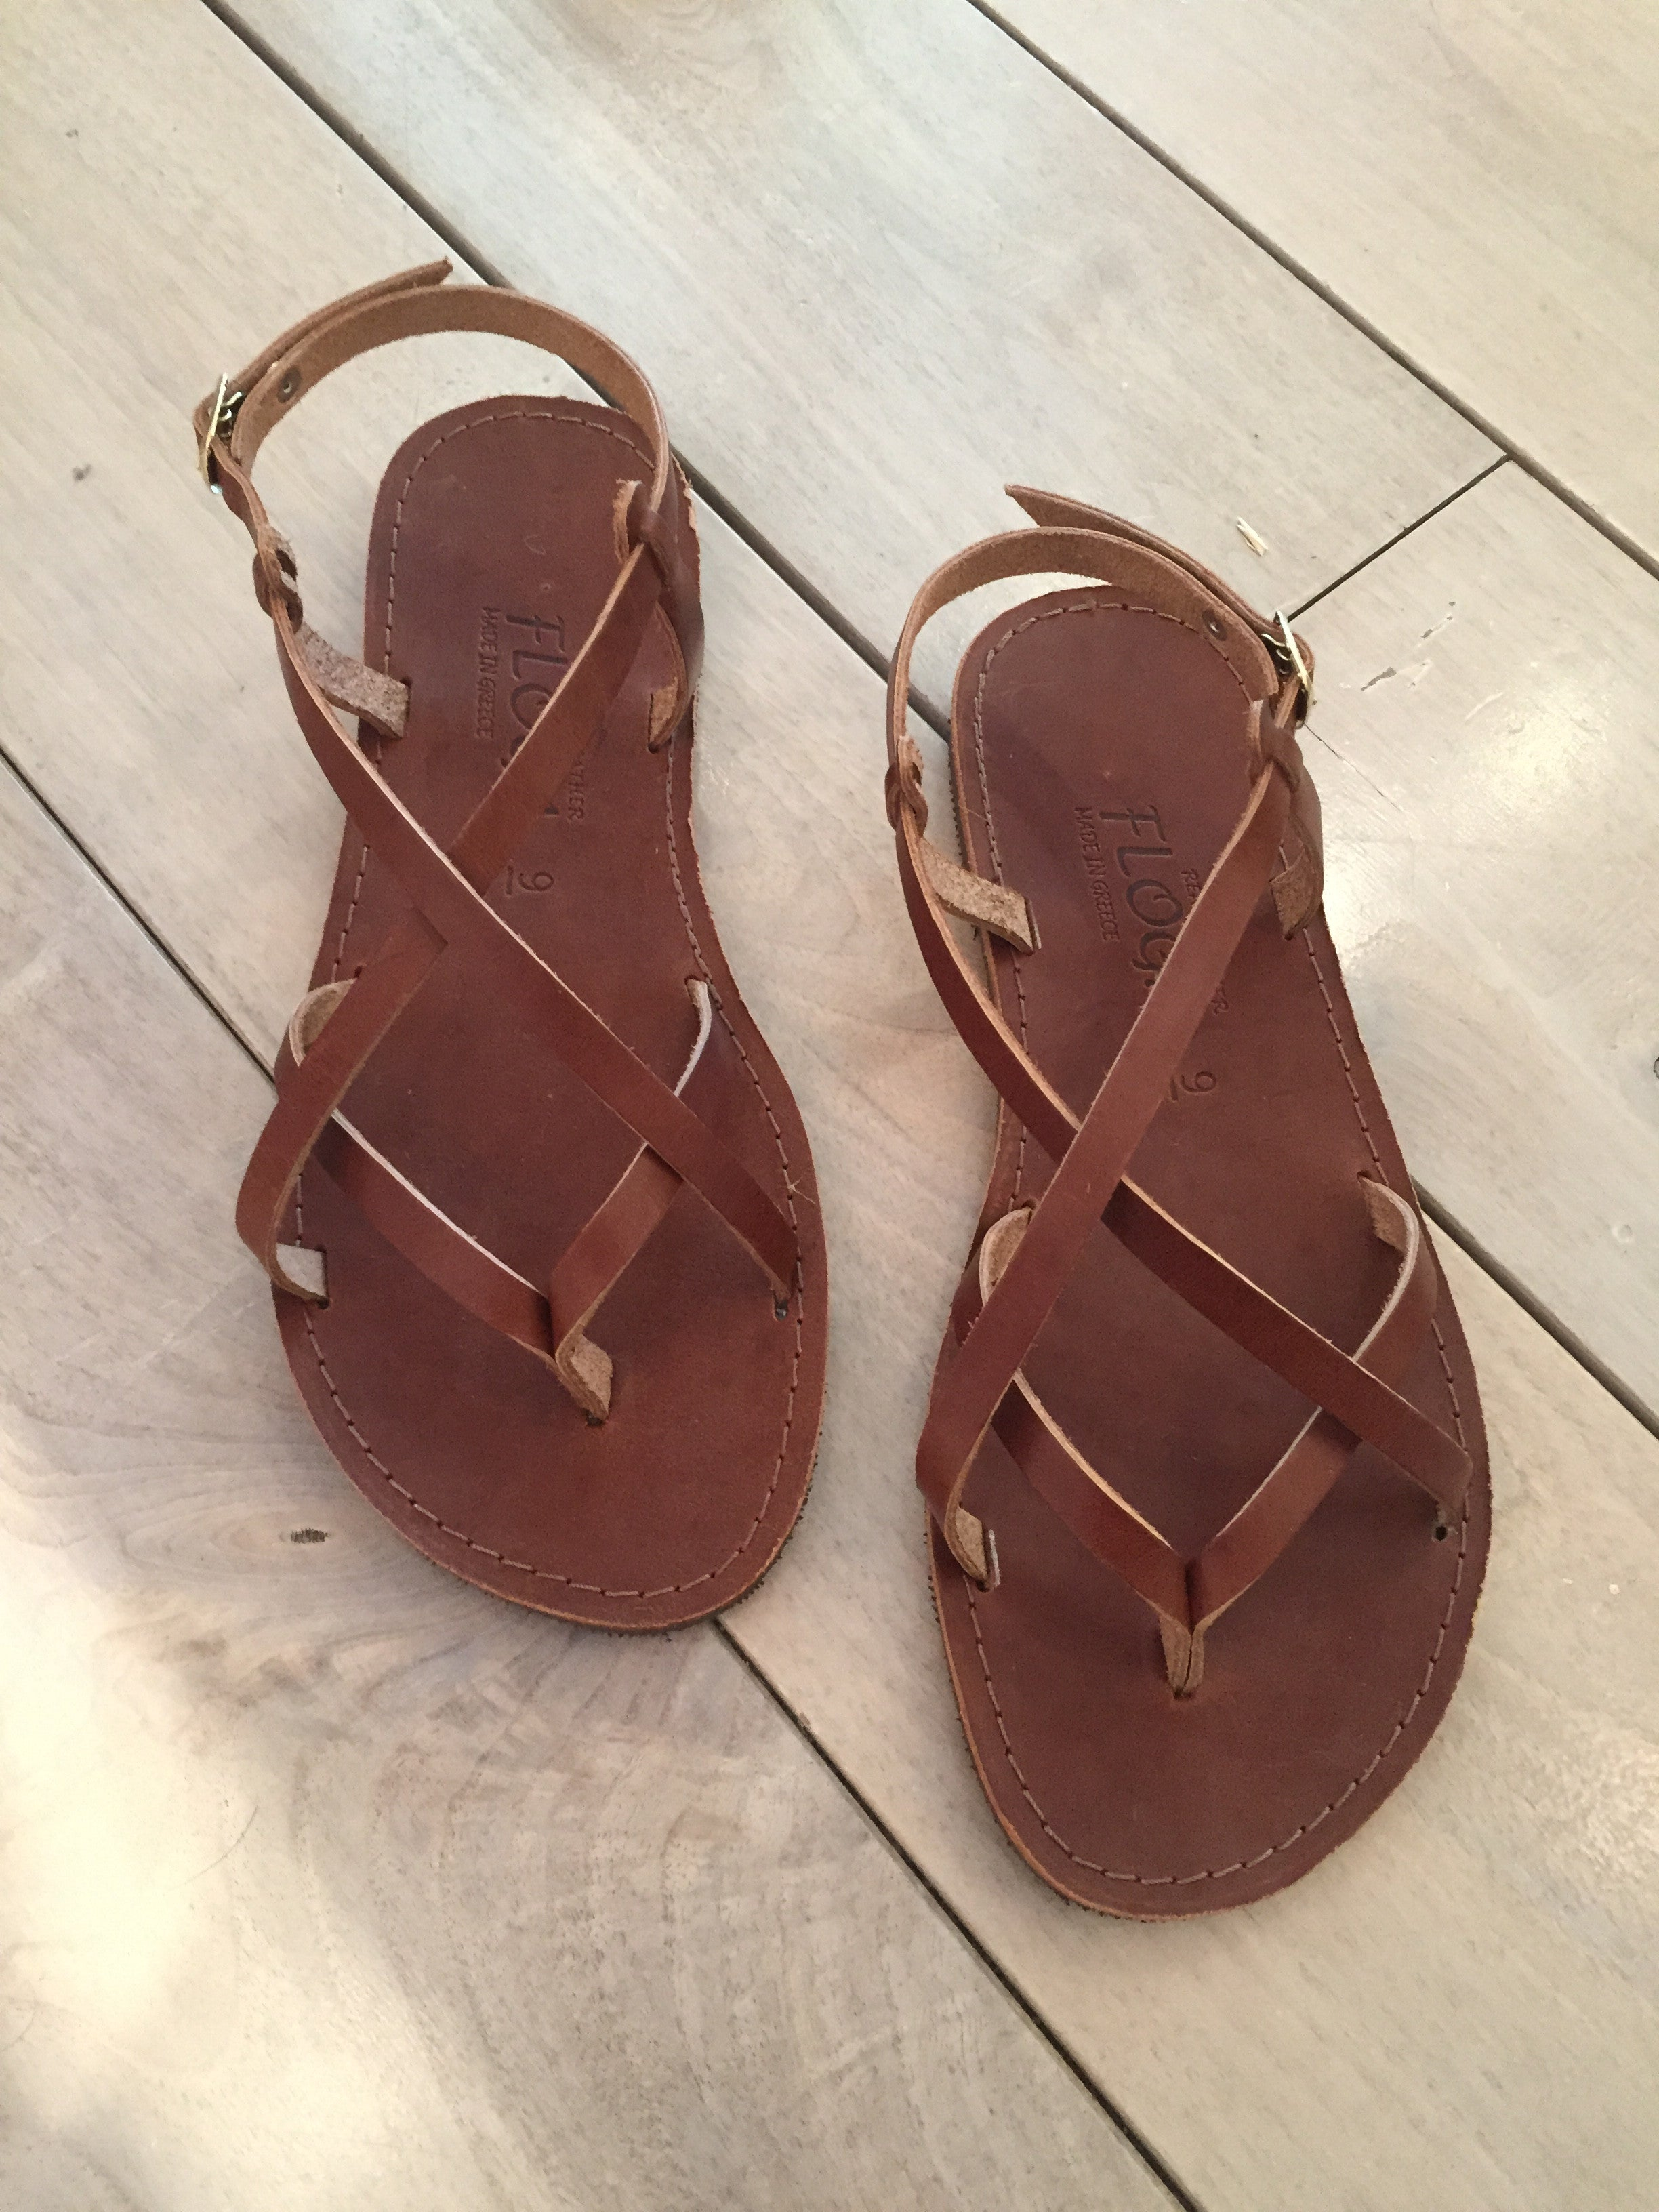 cc69d8d21fd Greek Sandals - Floga New York